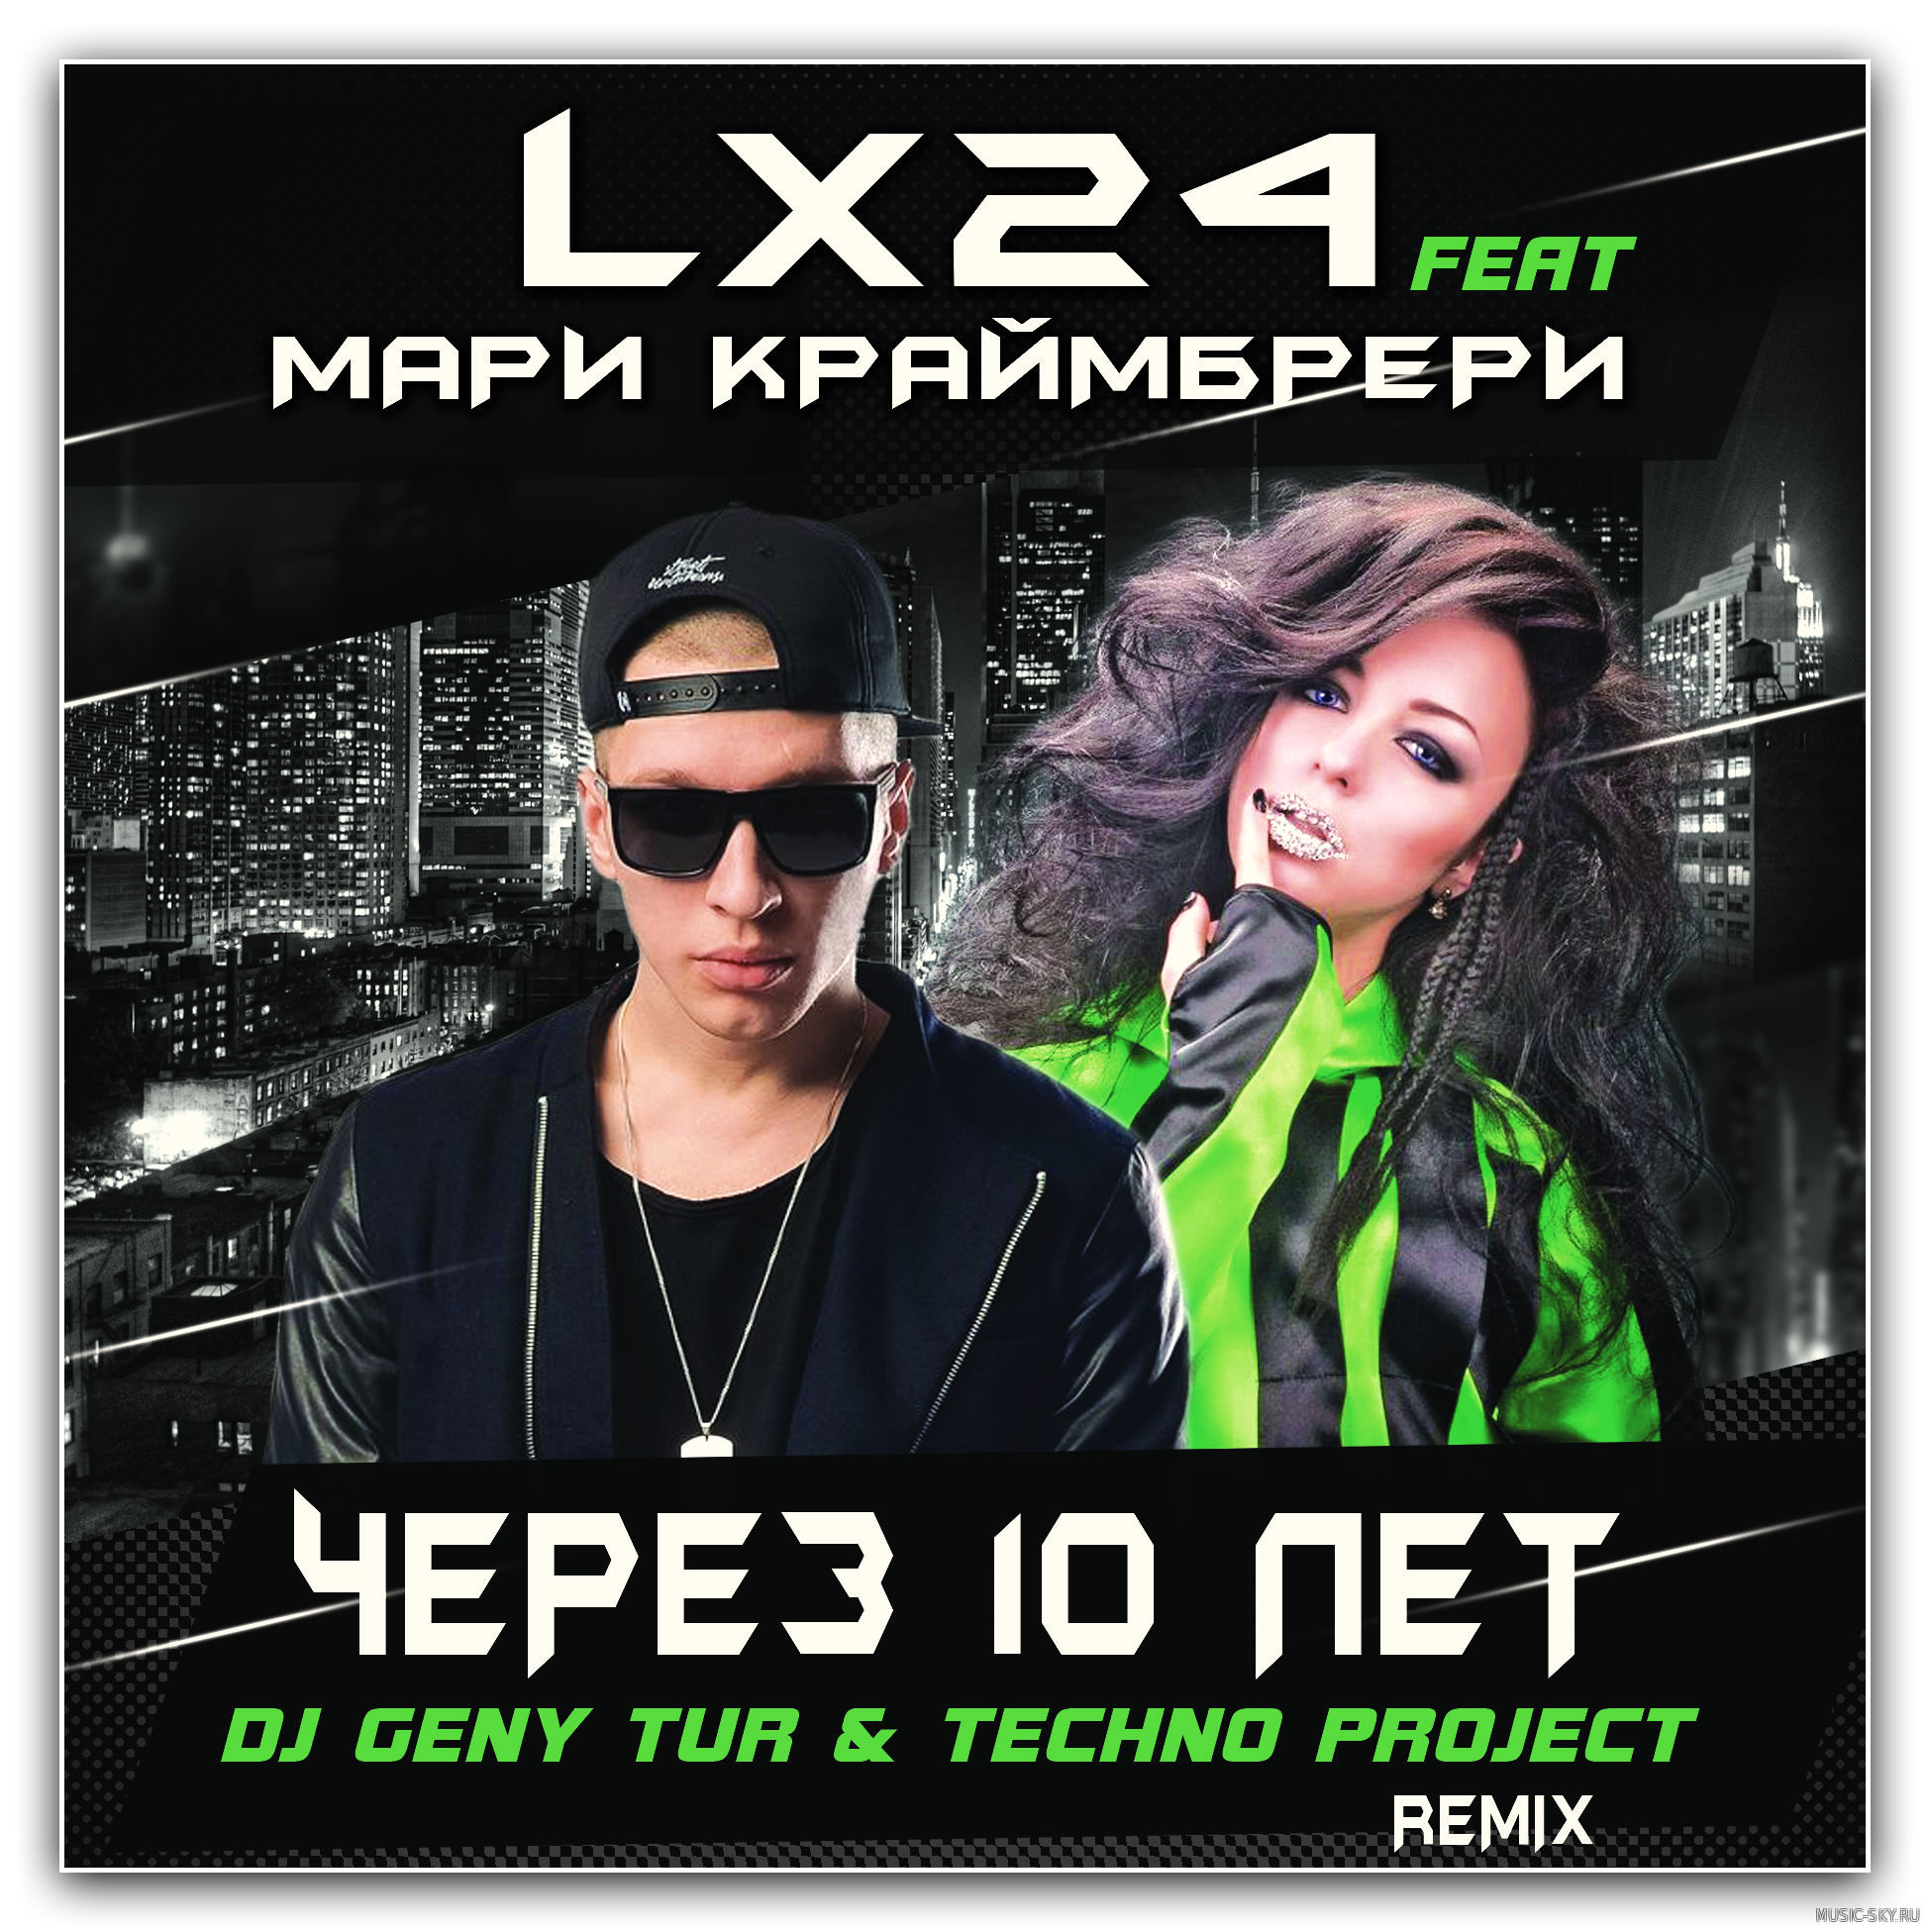 Lx24 и Мари Краймбрери - Через 10 лет (Dj Geny Tur & Techno Project Remix)